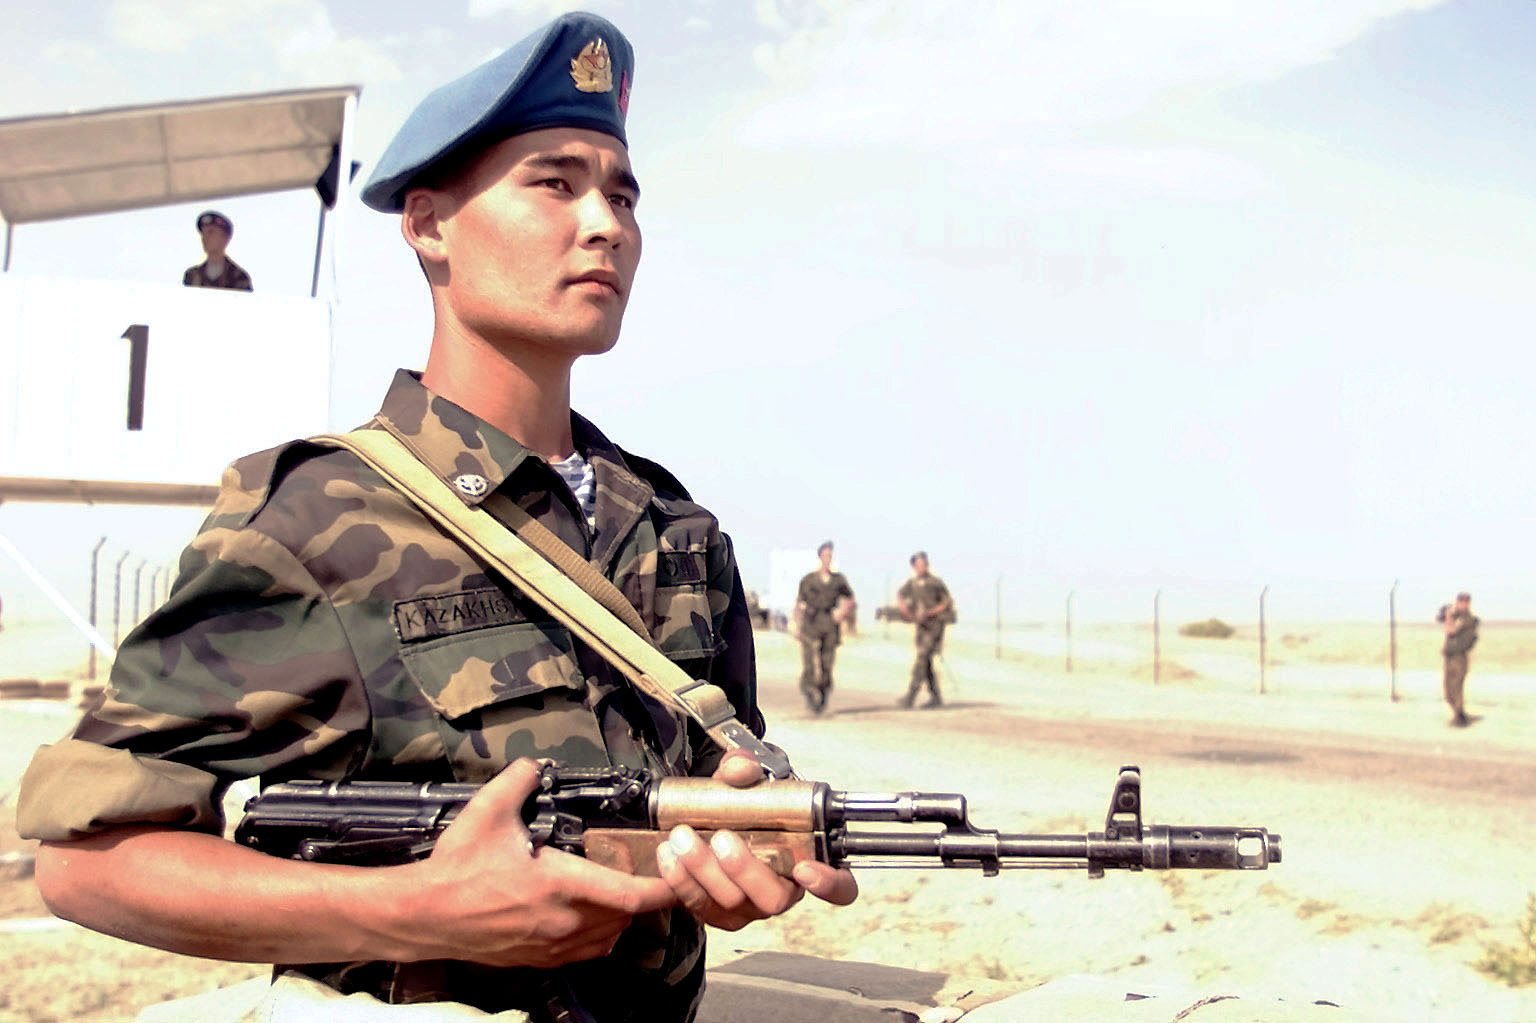 A Kazakhstan soldier, armed with 5.45 mm AK-74 assult rifle, mans a check point during the start of Central Asian Peacekeeping Battalion (CENTRASBAT) 2000. CENTRASBAT 2000 is a multi-national peacekeeping and humanitarian relief exercise sponsored by United States Central Command (US CENTCOM) and hosted by the former Soviet Republic Kazakhstan in Central Asia, 11-20 September 2000. Exercise participants include approximately 300 US troops including personnel from US CENTCOM, the US Army's 82nd Airborne Division, Fort Bragg, North Carolina, and 5th Special Forces Group, Ft. Campbell, Kentucky, and 300 Kazakhstan soldiers. Other participating nations include: Uzbekistan, Kyrgystan, The United Kingdom, Turkey, Russia, Georgia, Azerbaijan and Mongolia. CENTRASBAT originated in 1996, and was established to form a joint battalion of soldiers from the former Soviet Republics of Kazakhstan, Kyrgystan and Uzbekistan to serve as a key component in developing a regional security and cooperation structure. CENTRASBAT 2000 will test US and Central Asian unit's combat readiness and ability to conduct peacekeeping and humanitarian operations, as well as develop and build cooperative relationships between the respective states and assist in laying the foundation for future peacekeeping and humanitarian operations. Almaty, Kazakhstan (KAZ), 15 September 2000.